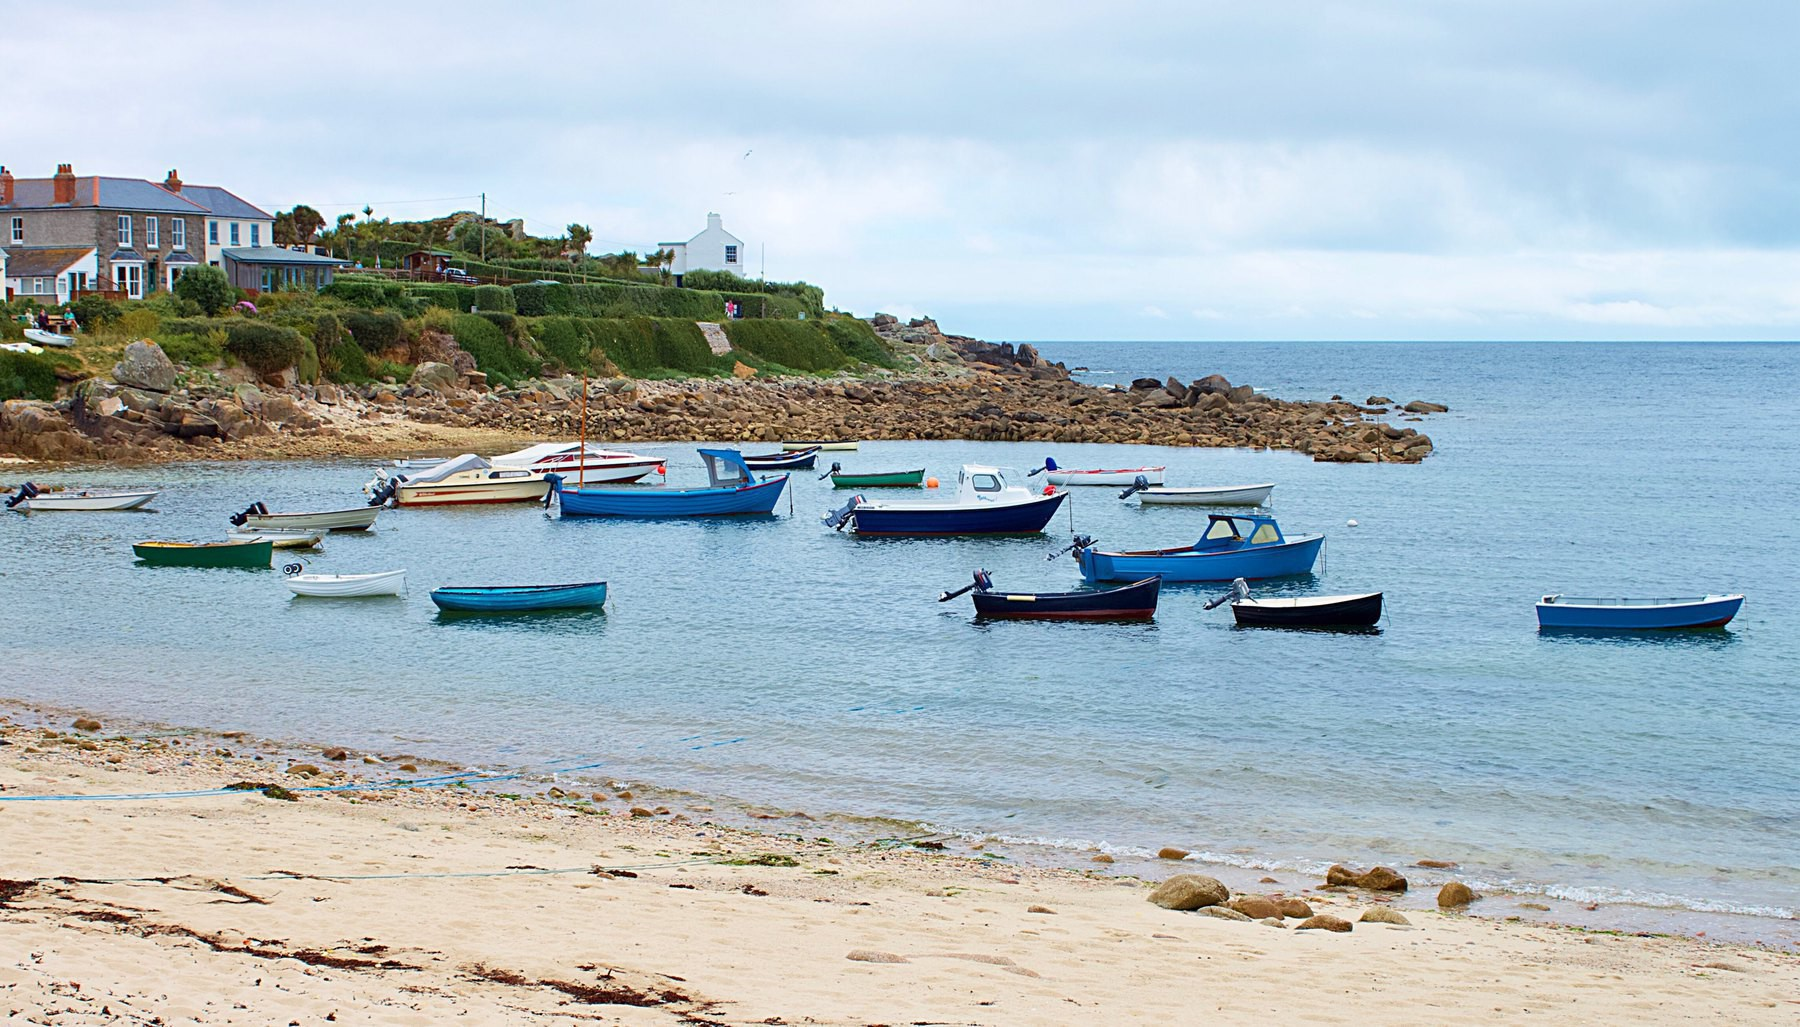 A bay on one of the Isles of Scilly.